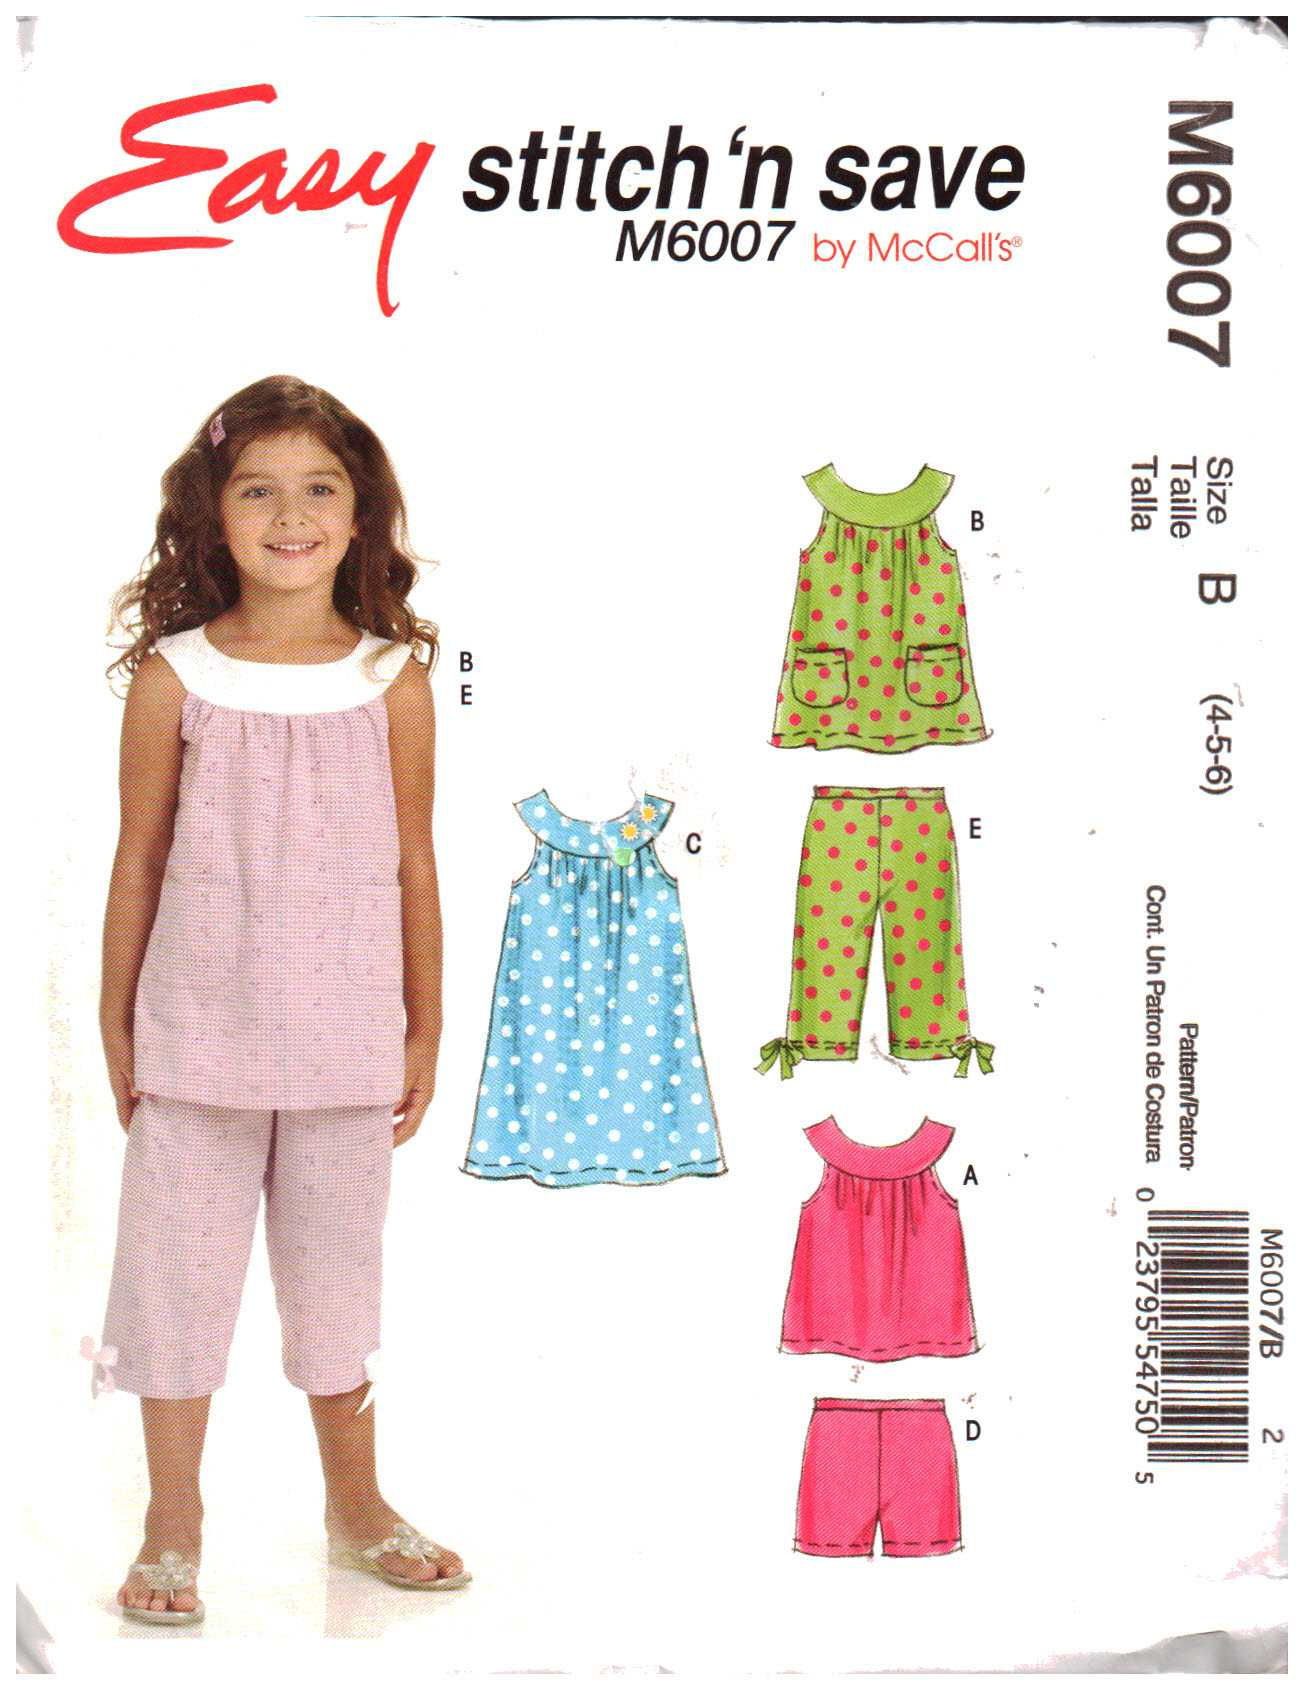 Products Archive - Page 30 of 491 - Pattern-Walk